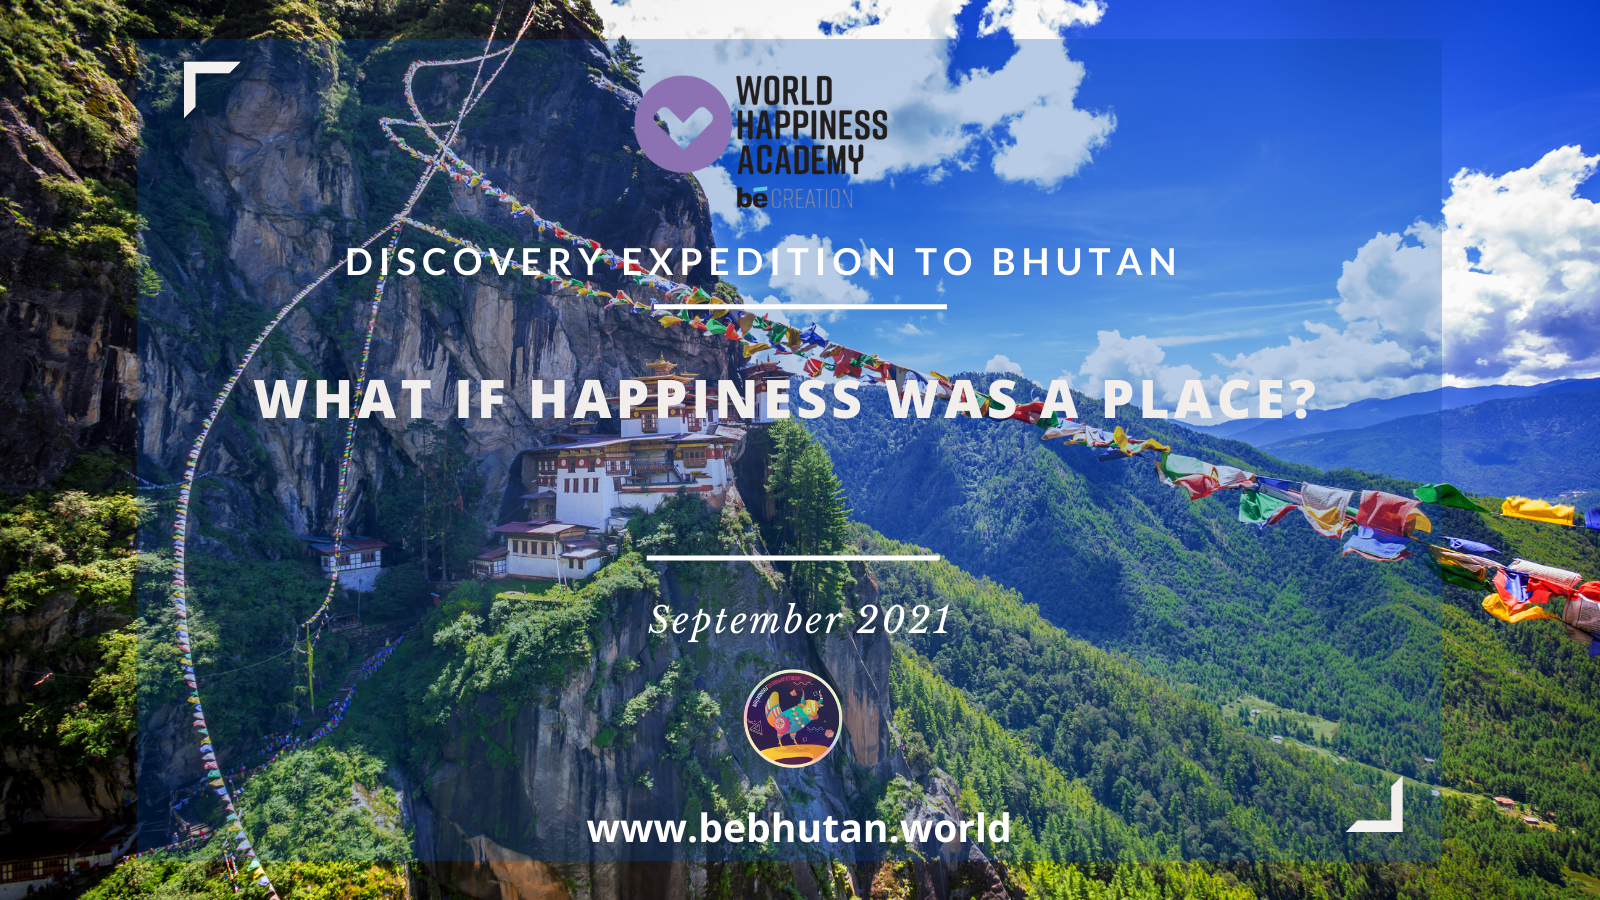 Discovery Expedition to Bhutan